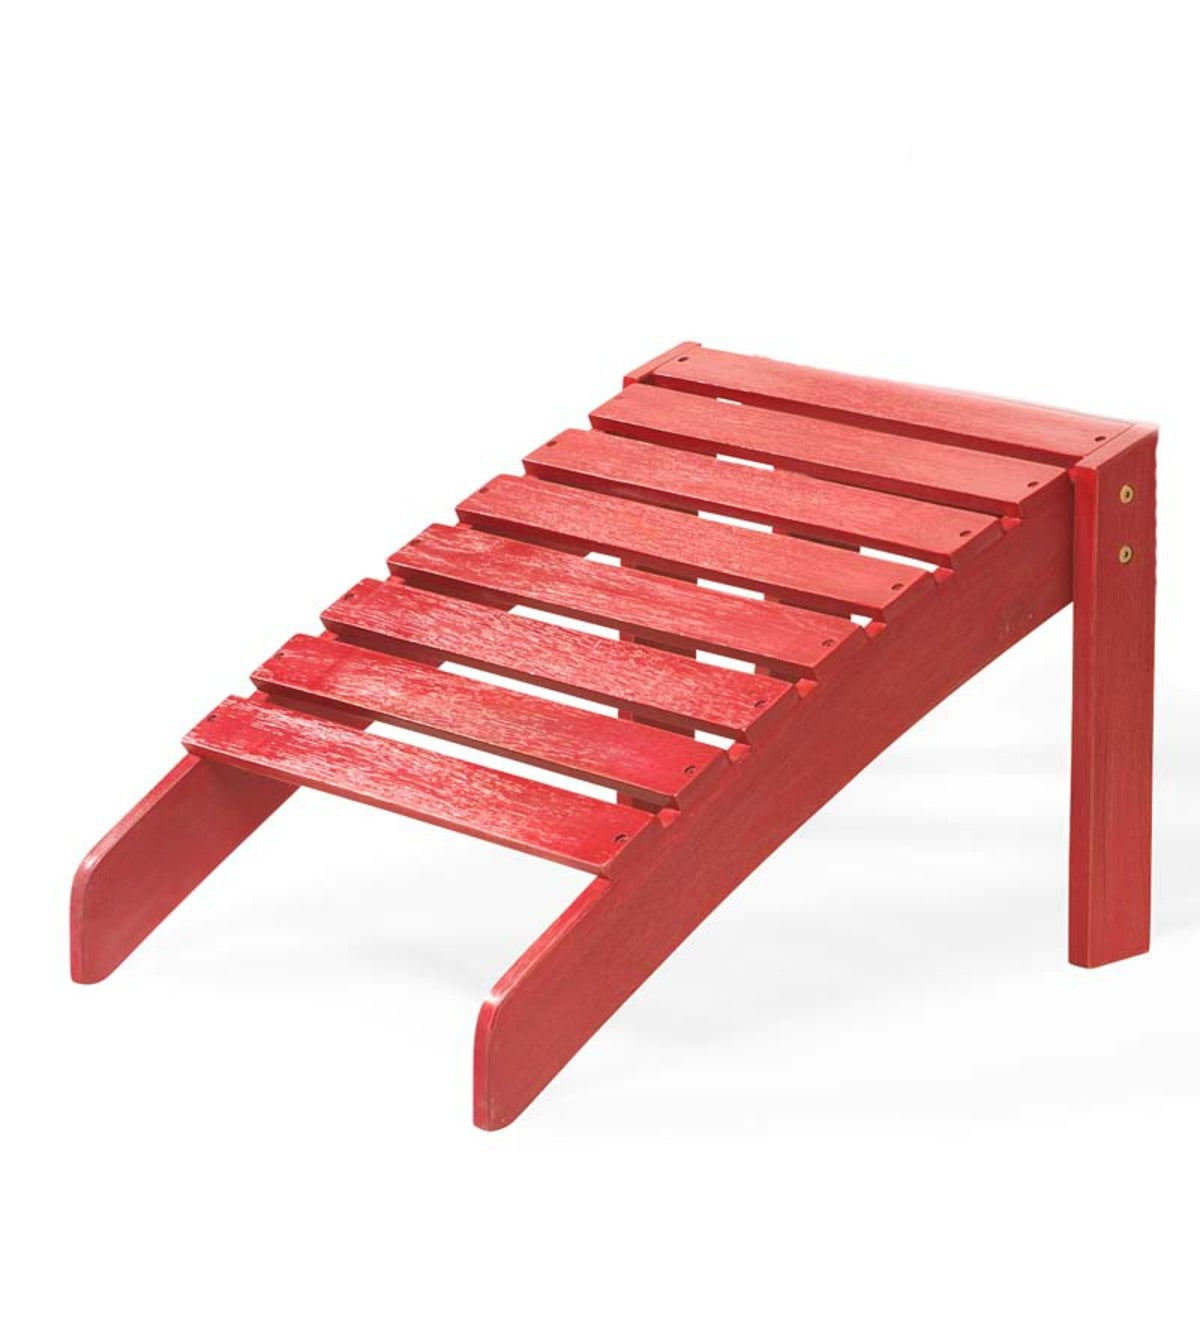 Classic Adirondack Footrest - Red Painted